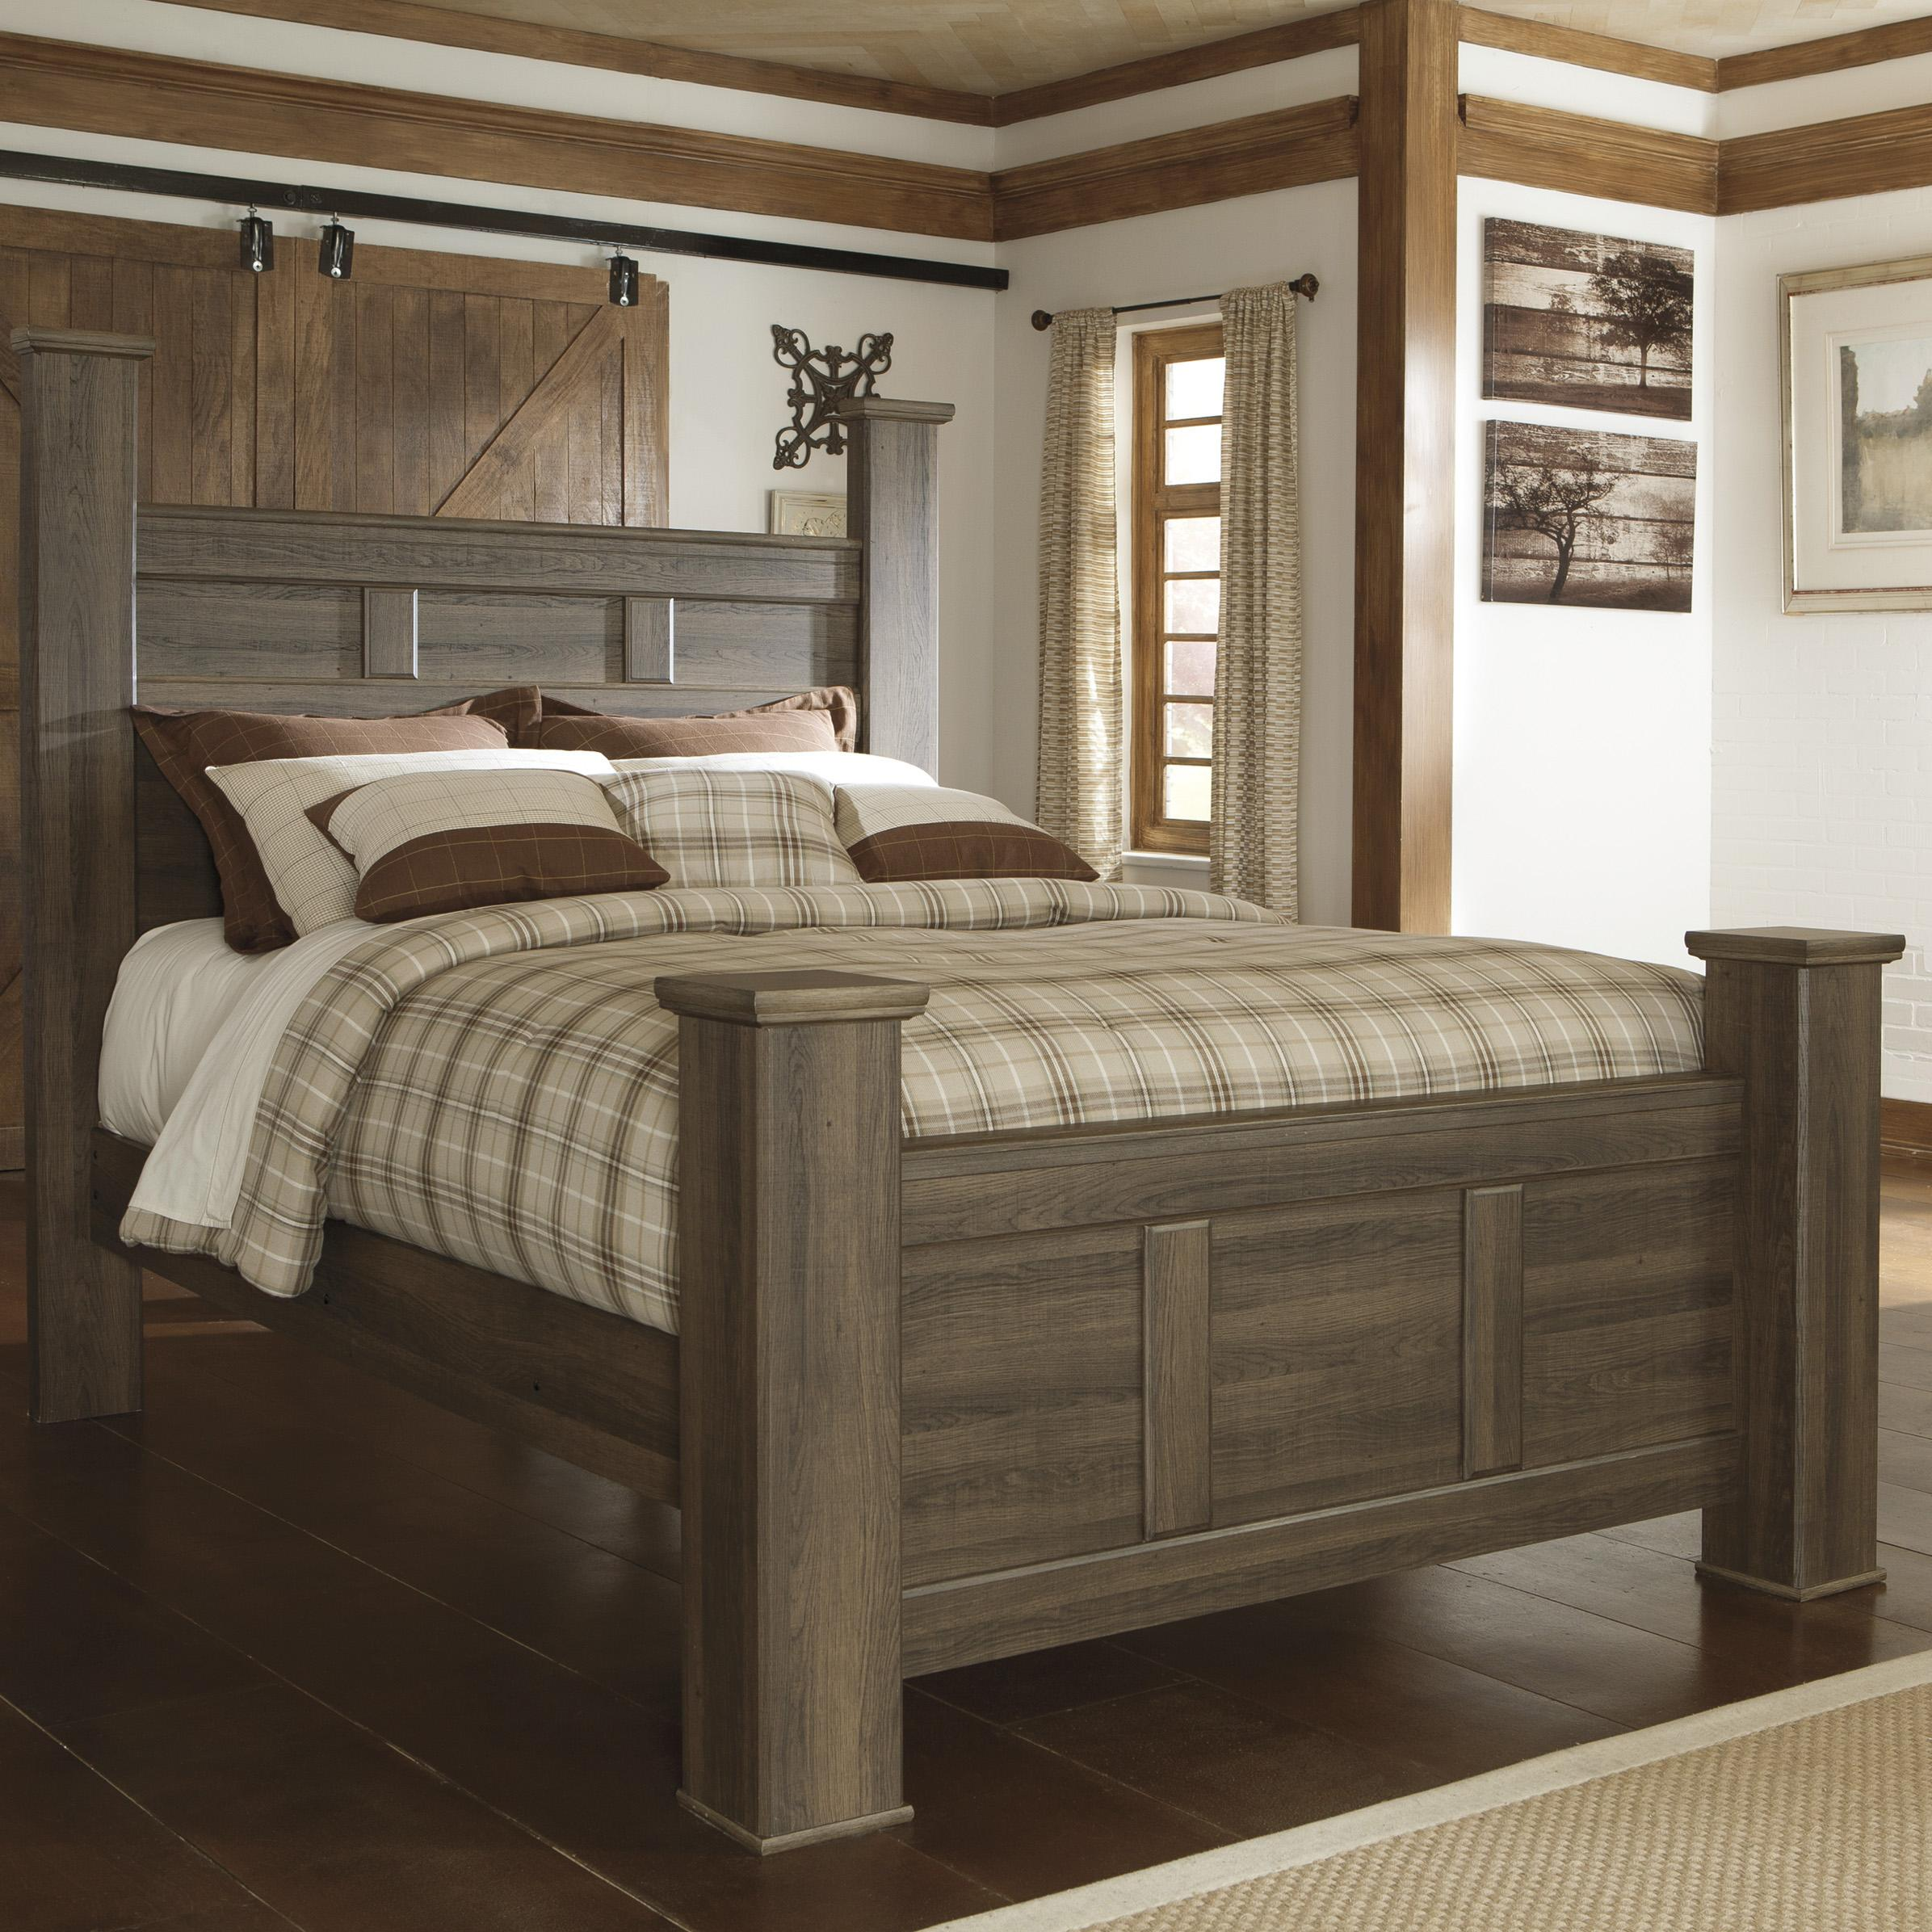 High Poster Bed King Signature Design By Ashley Juararo Transitional Queen